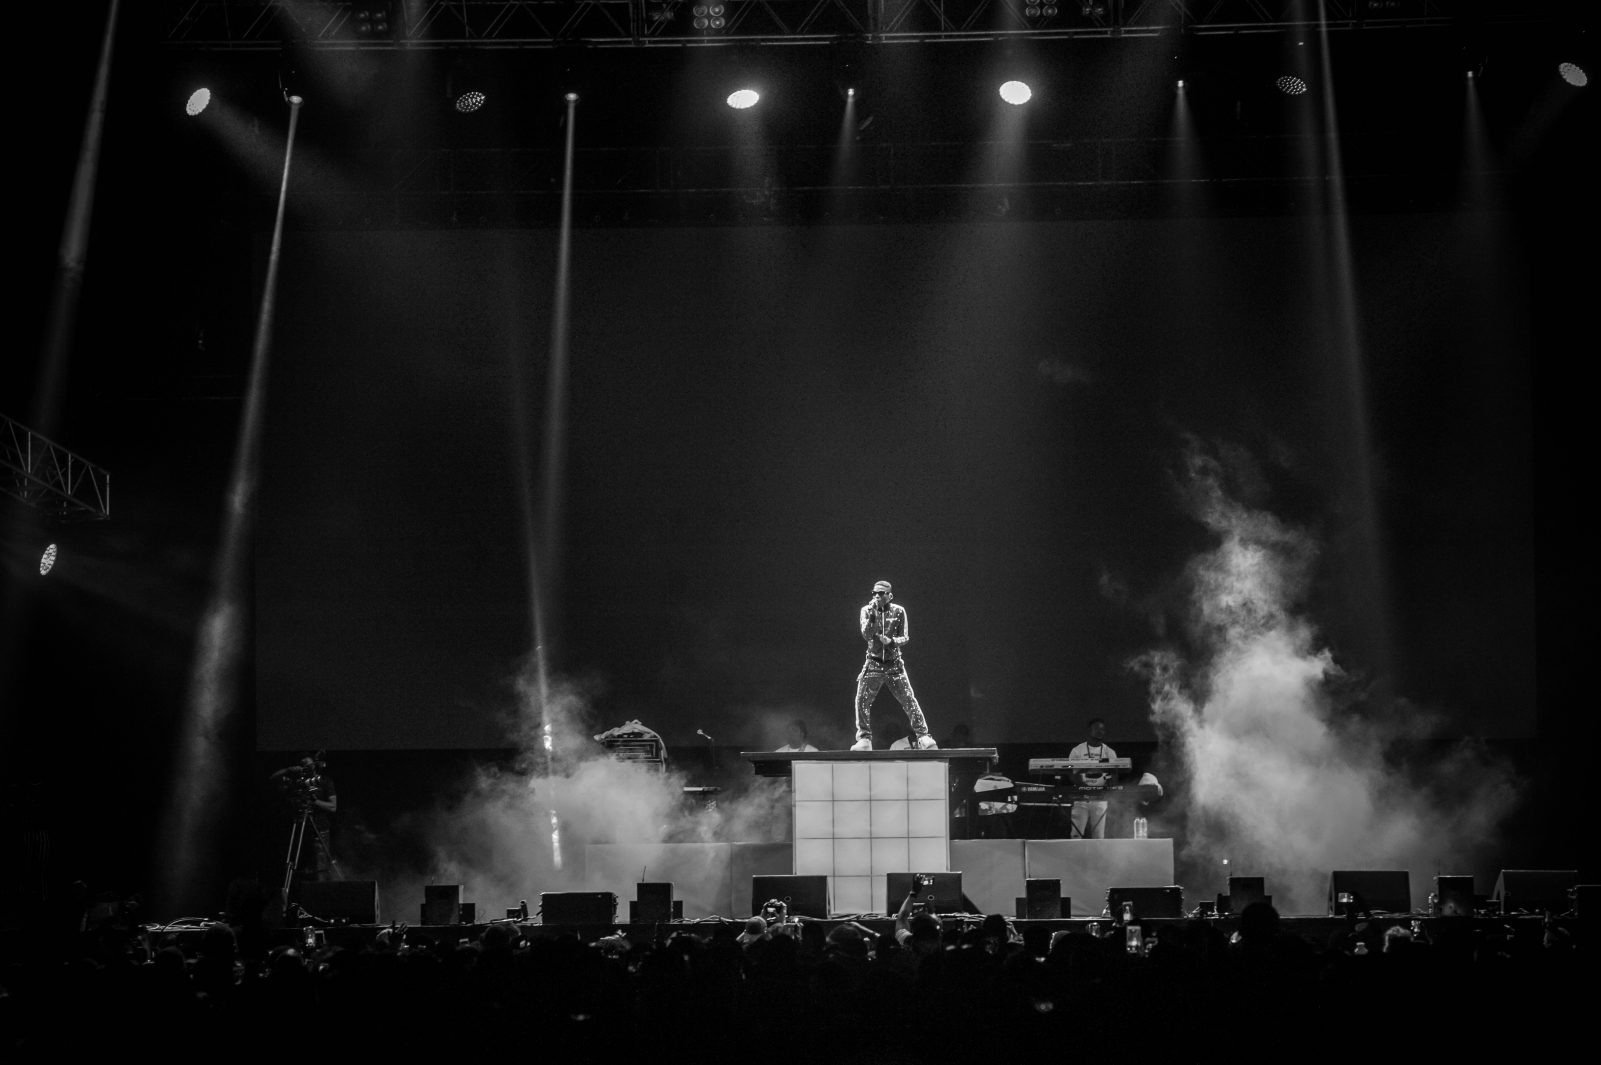 o2 Arena, London, United Kingdom. 26th May 2018. Wizkid performs on stage during AFROREPUBLIK festival at The O2 Arena.